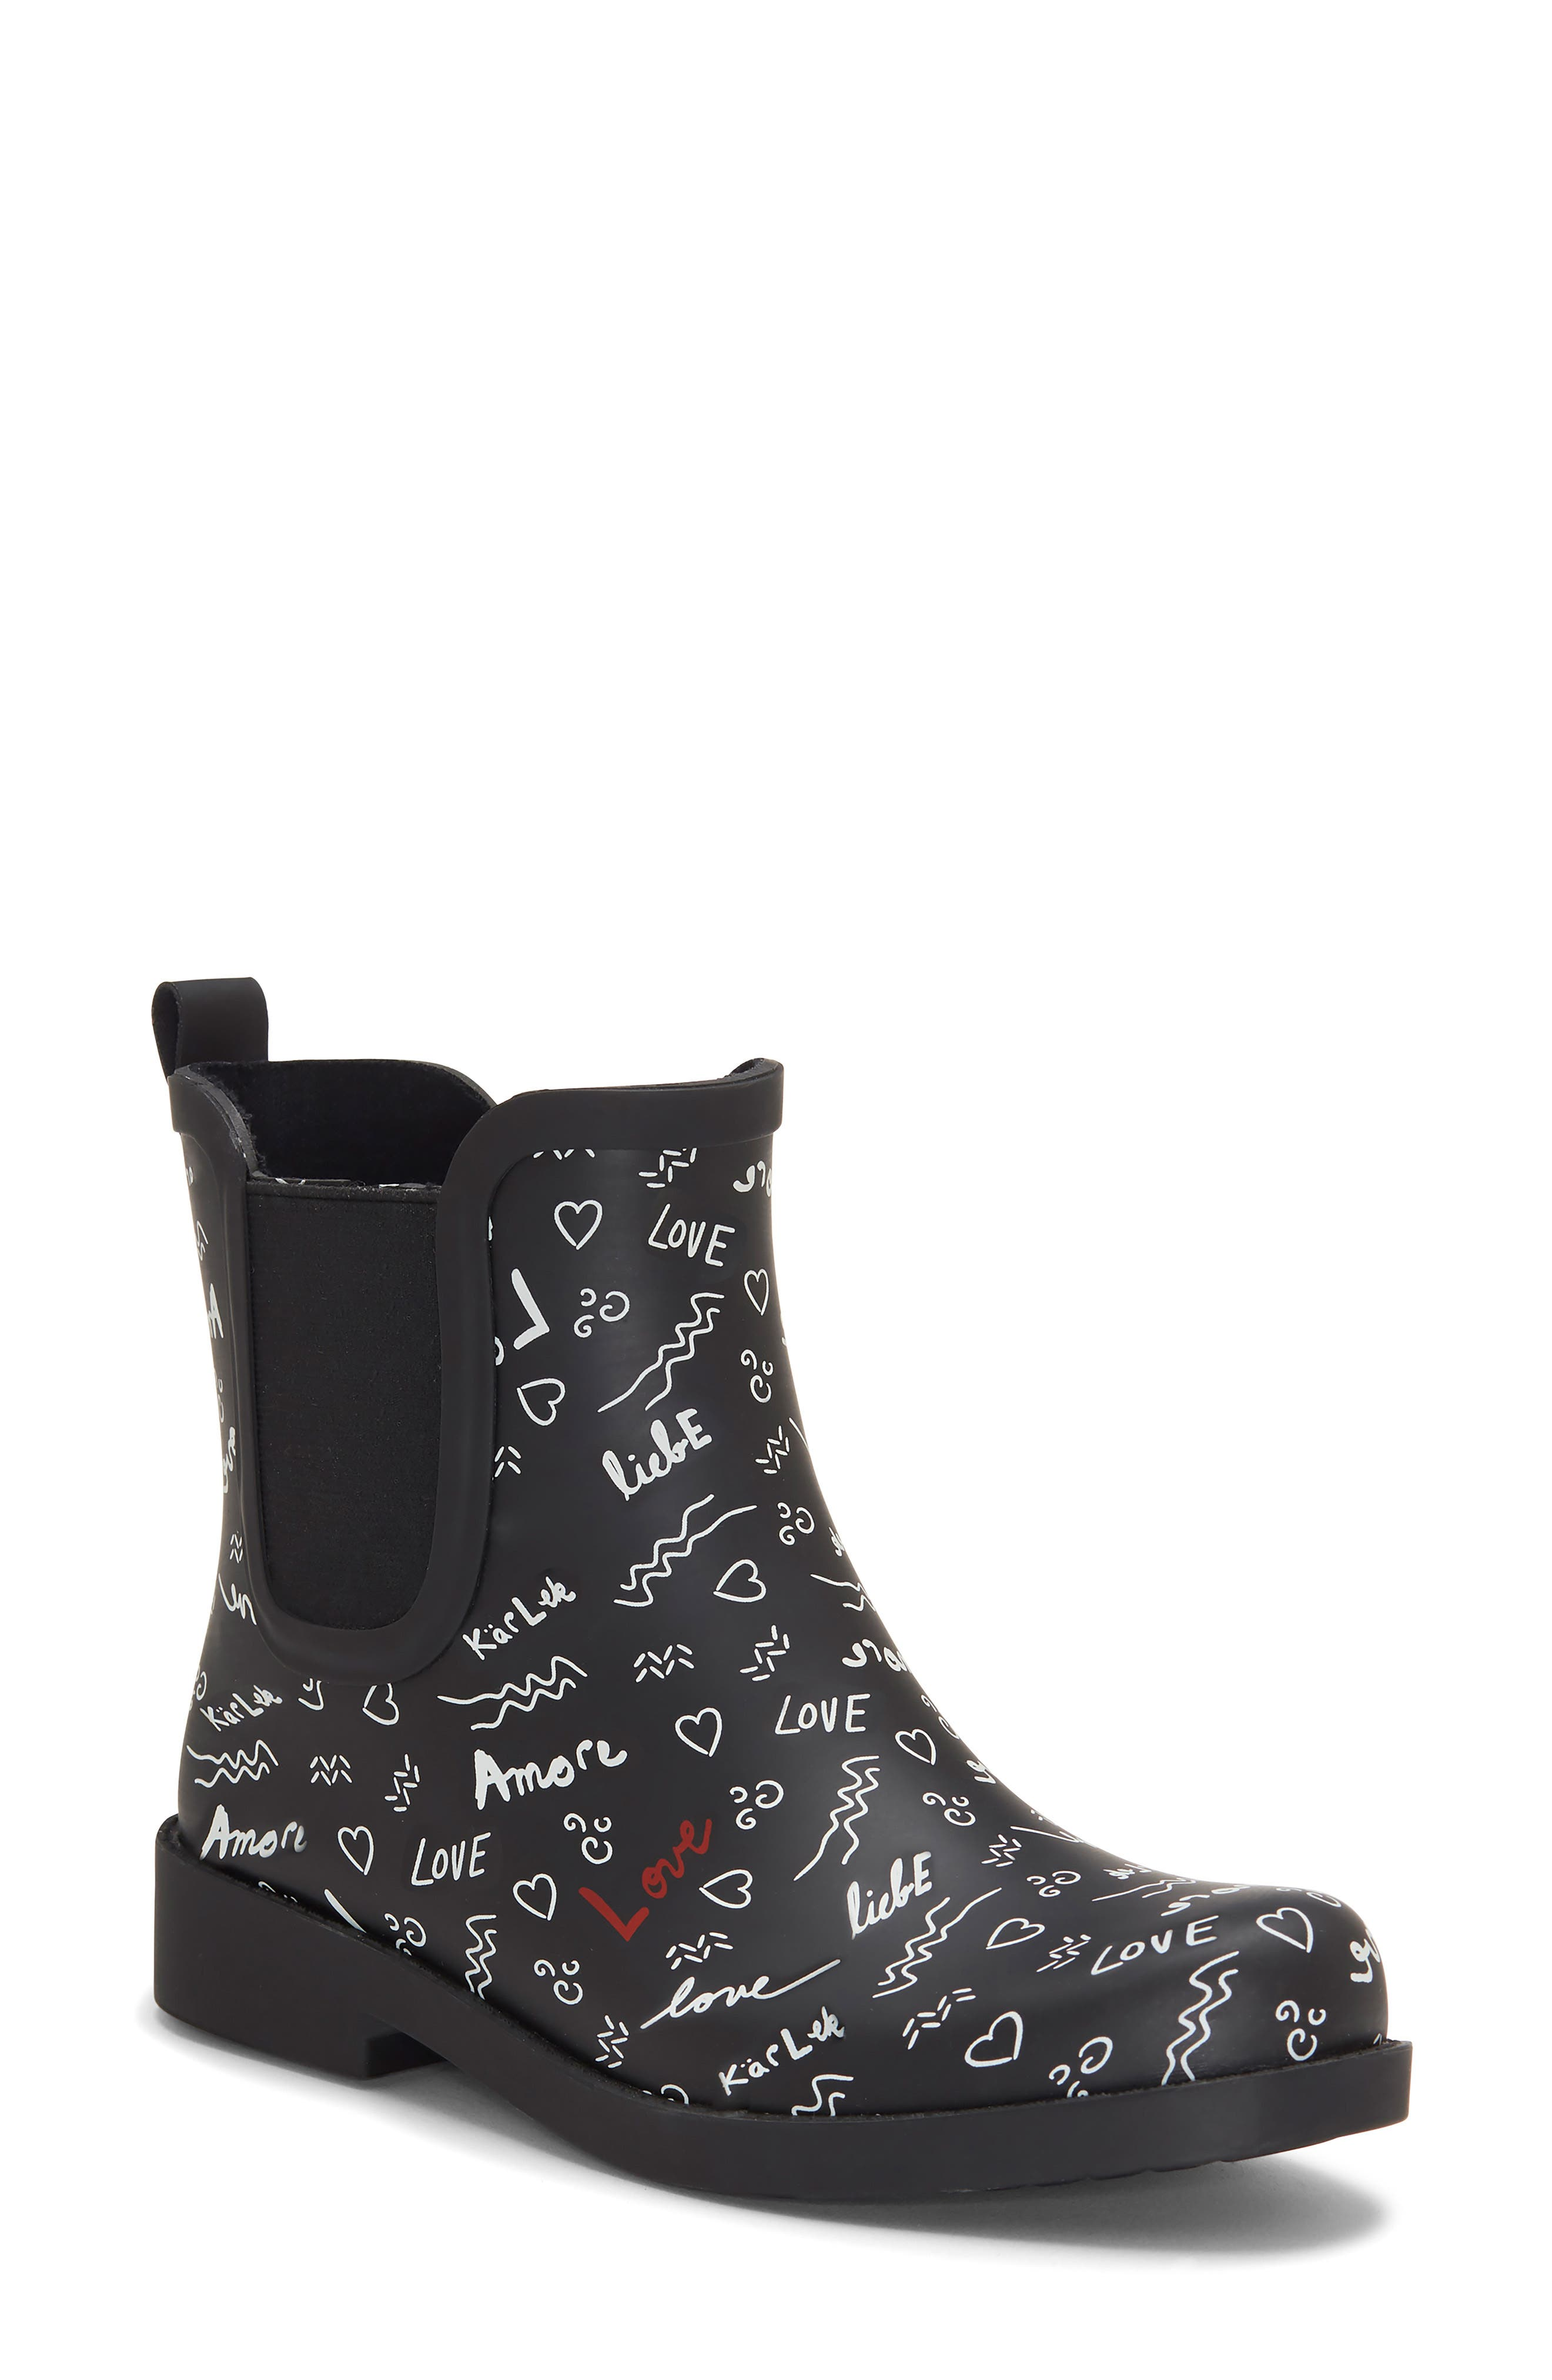 ED ELLEN DEGENERES Wallita Rain Boot, Main, color, BLACK/ WHITE MATTE RUBBER